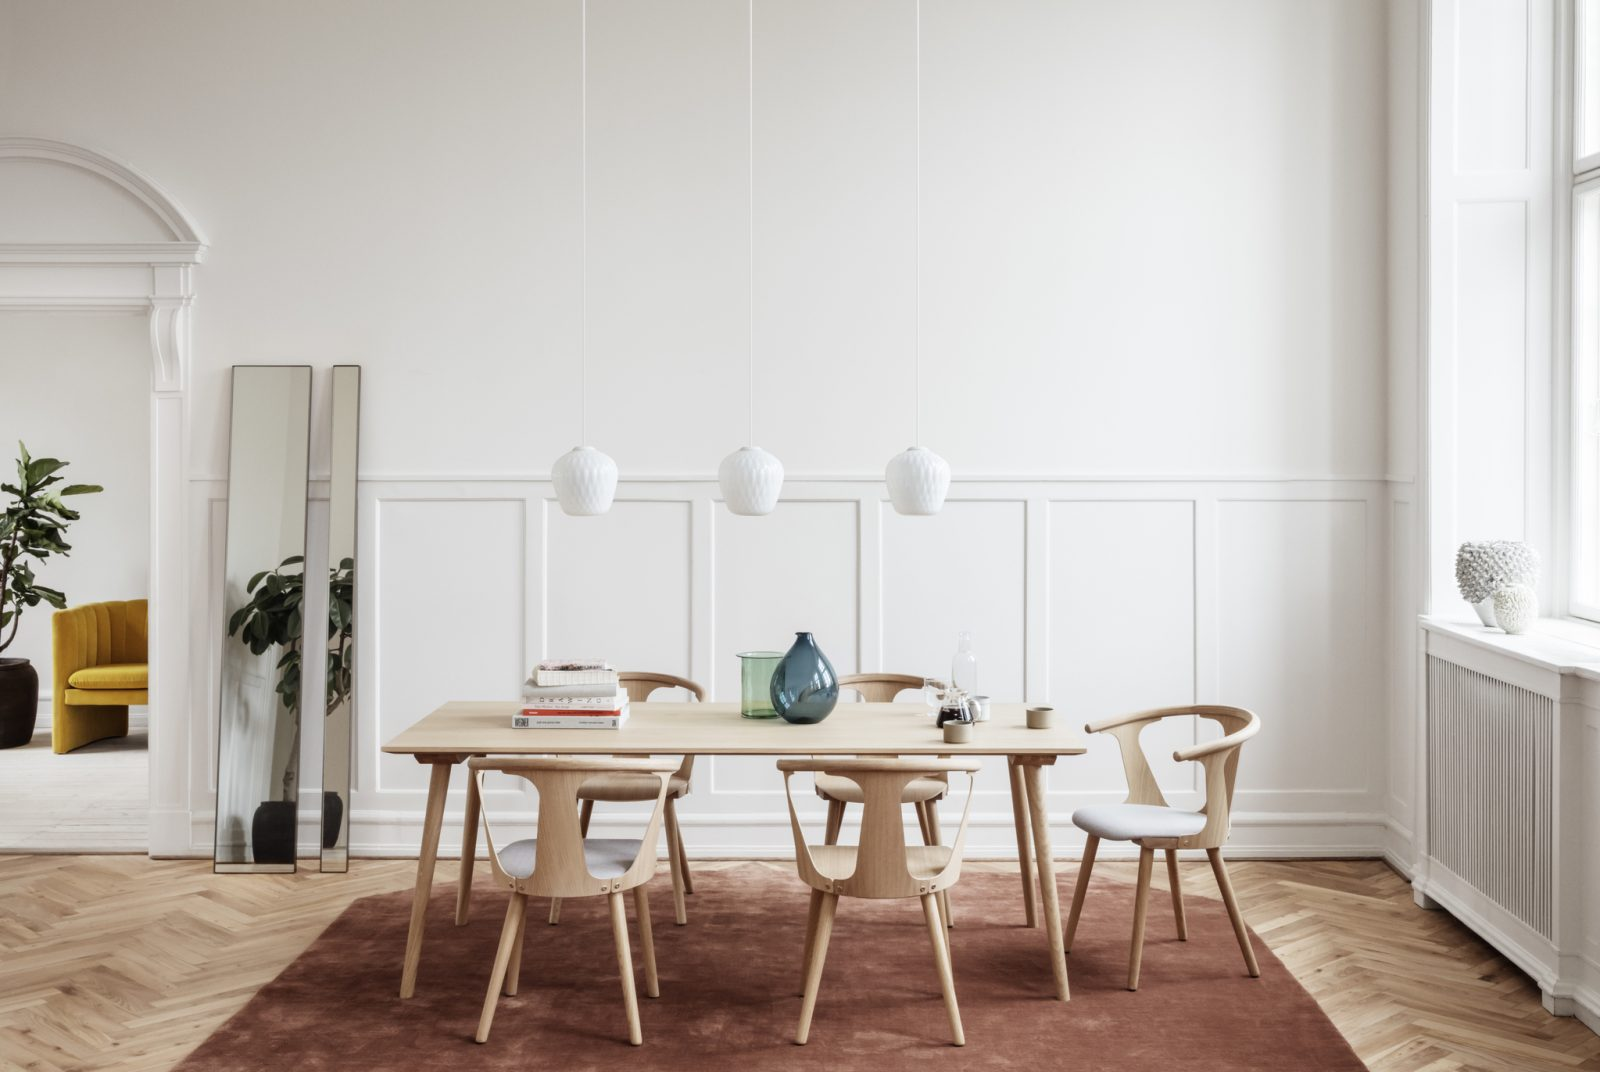 Nordic character: the main thing about Danish design